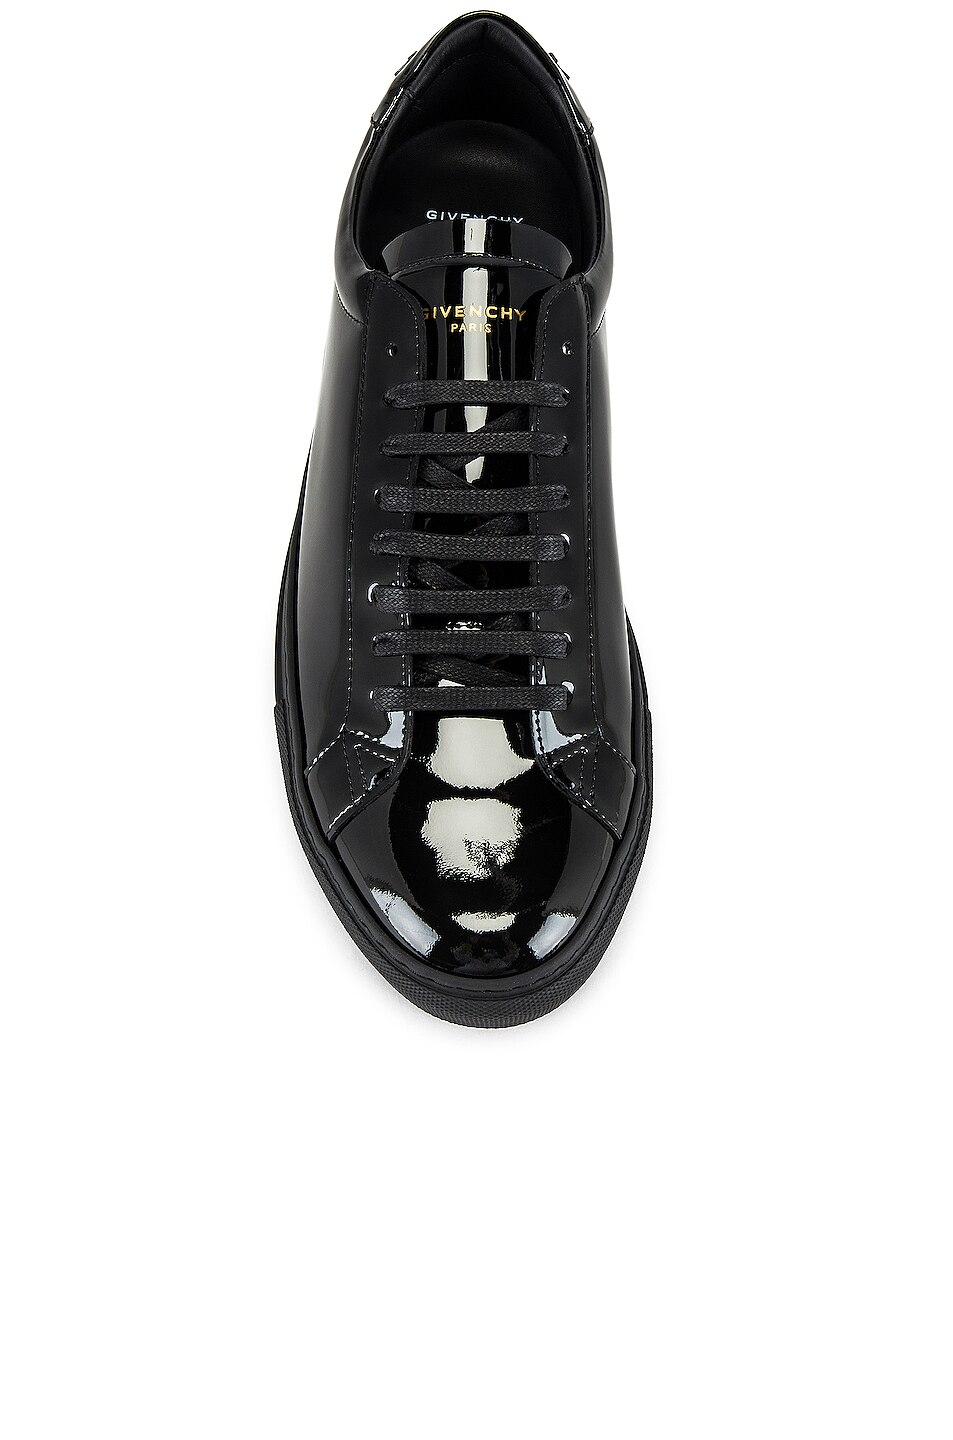 Givenchy Patent Leather Urban Street Sneaker